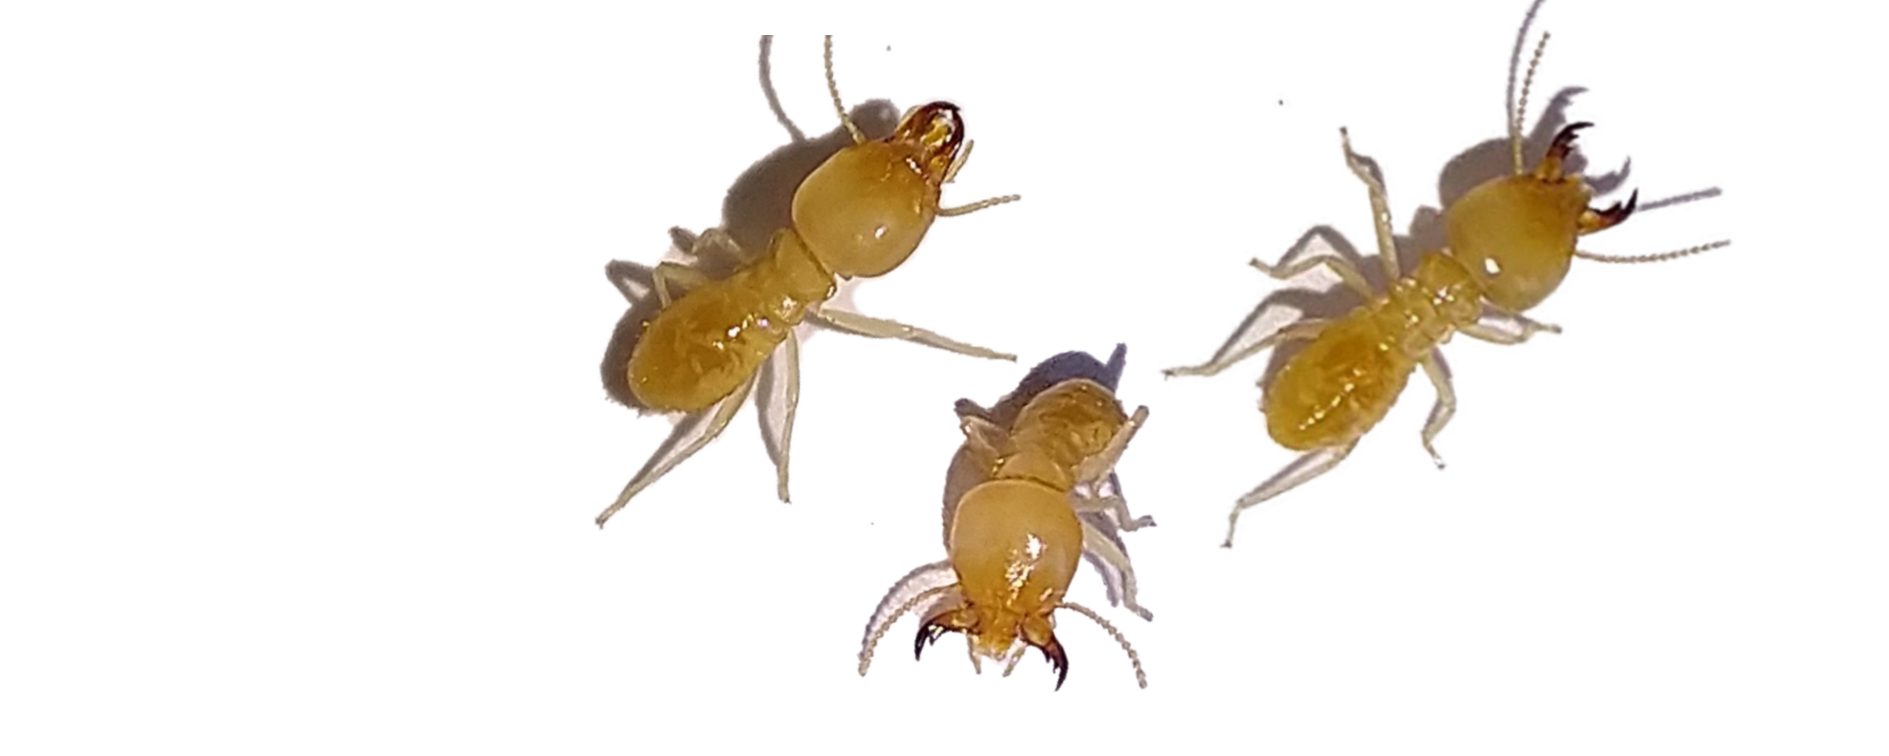 How To Get Rid Of White Ants Diy White Ants Treatment Control